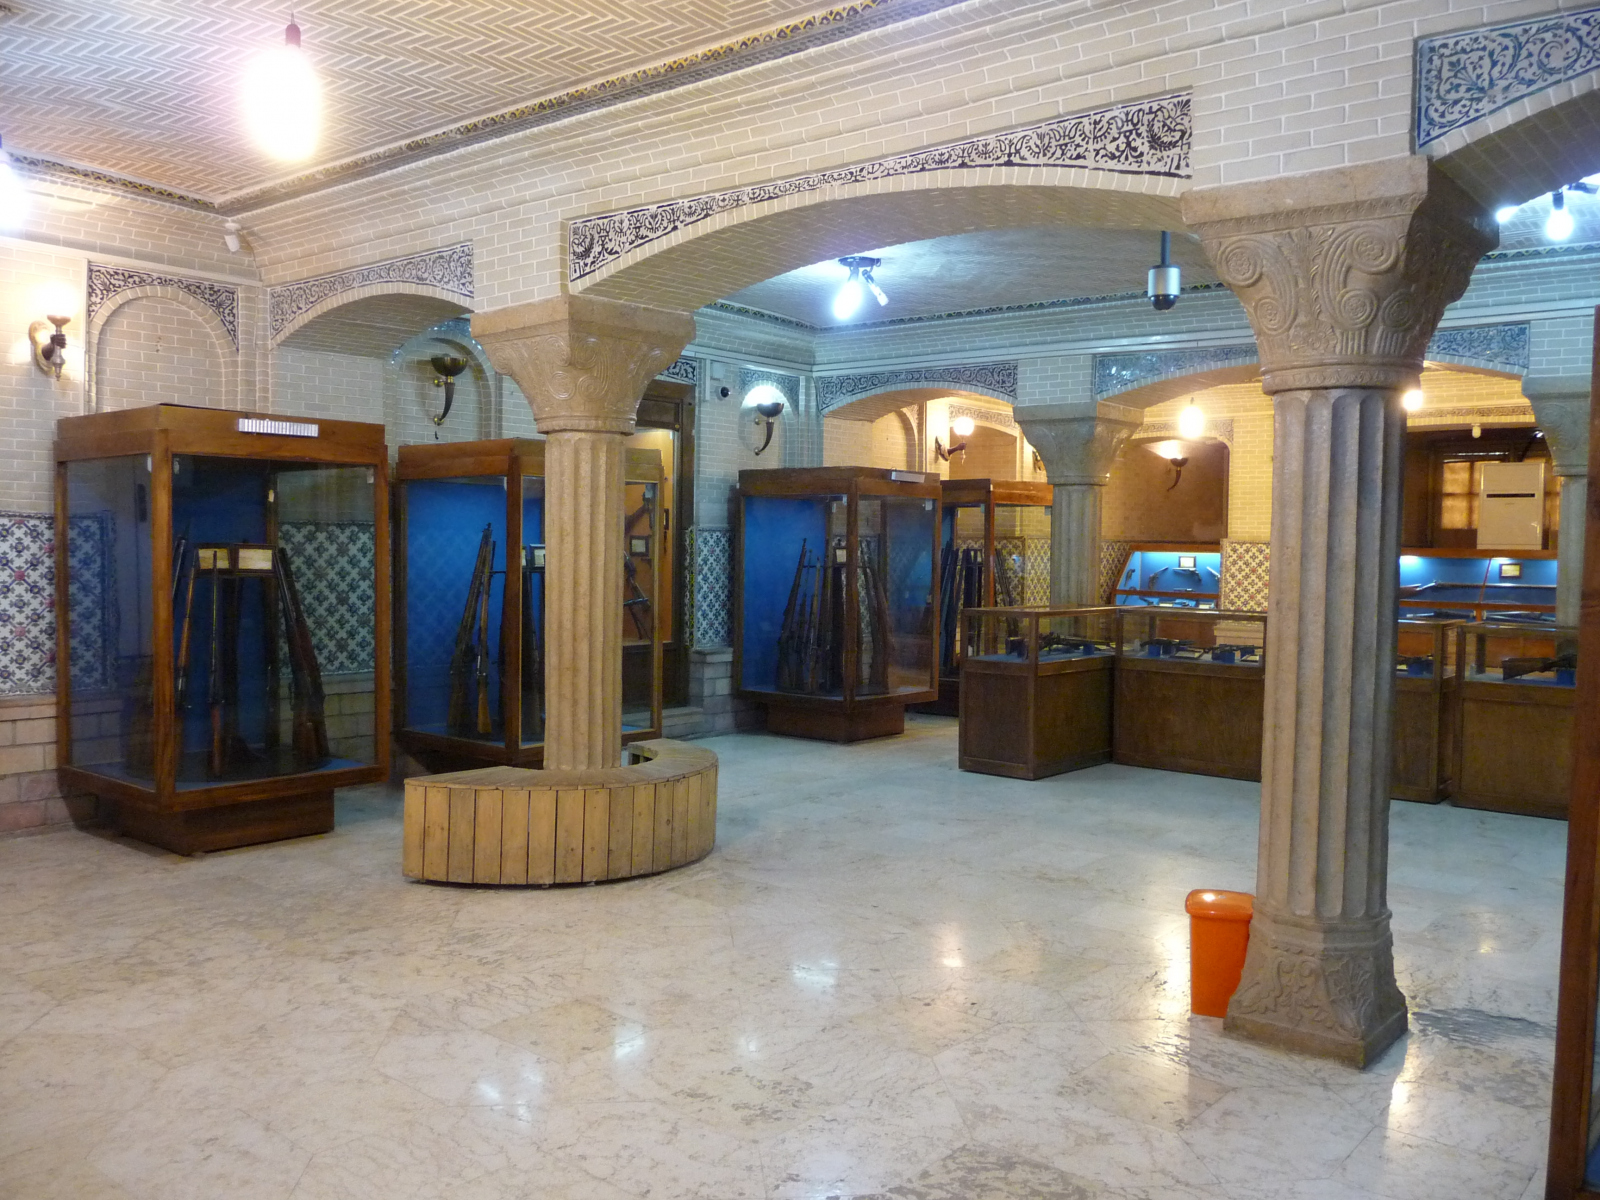 Baq-e Afifabad - Museum - Black Powder Weapons